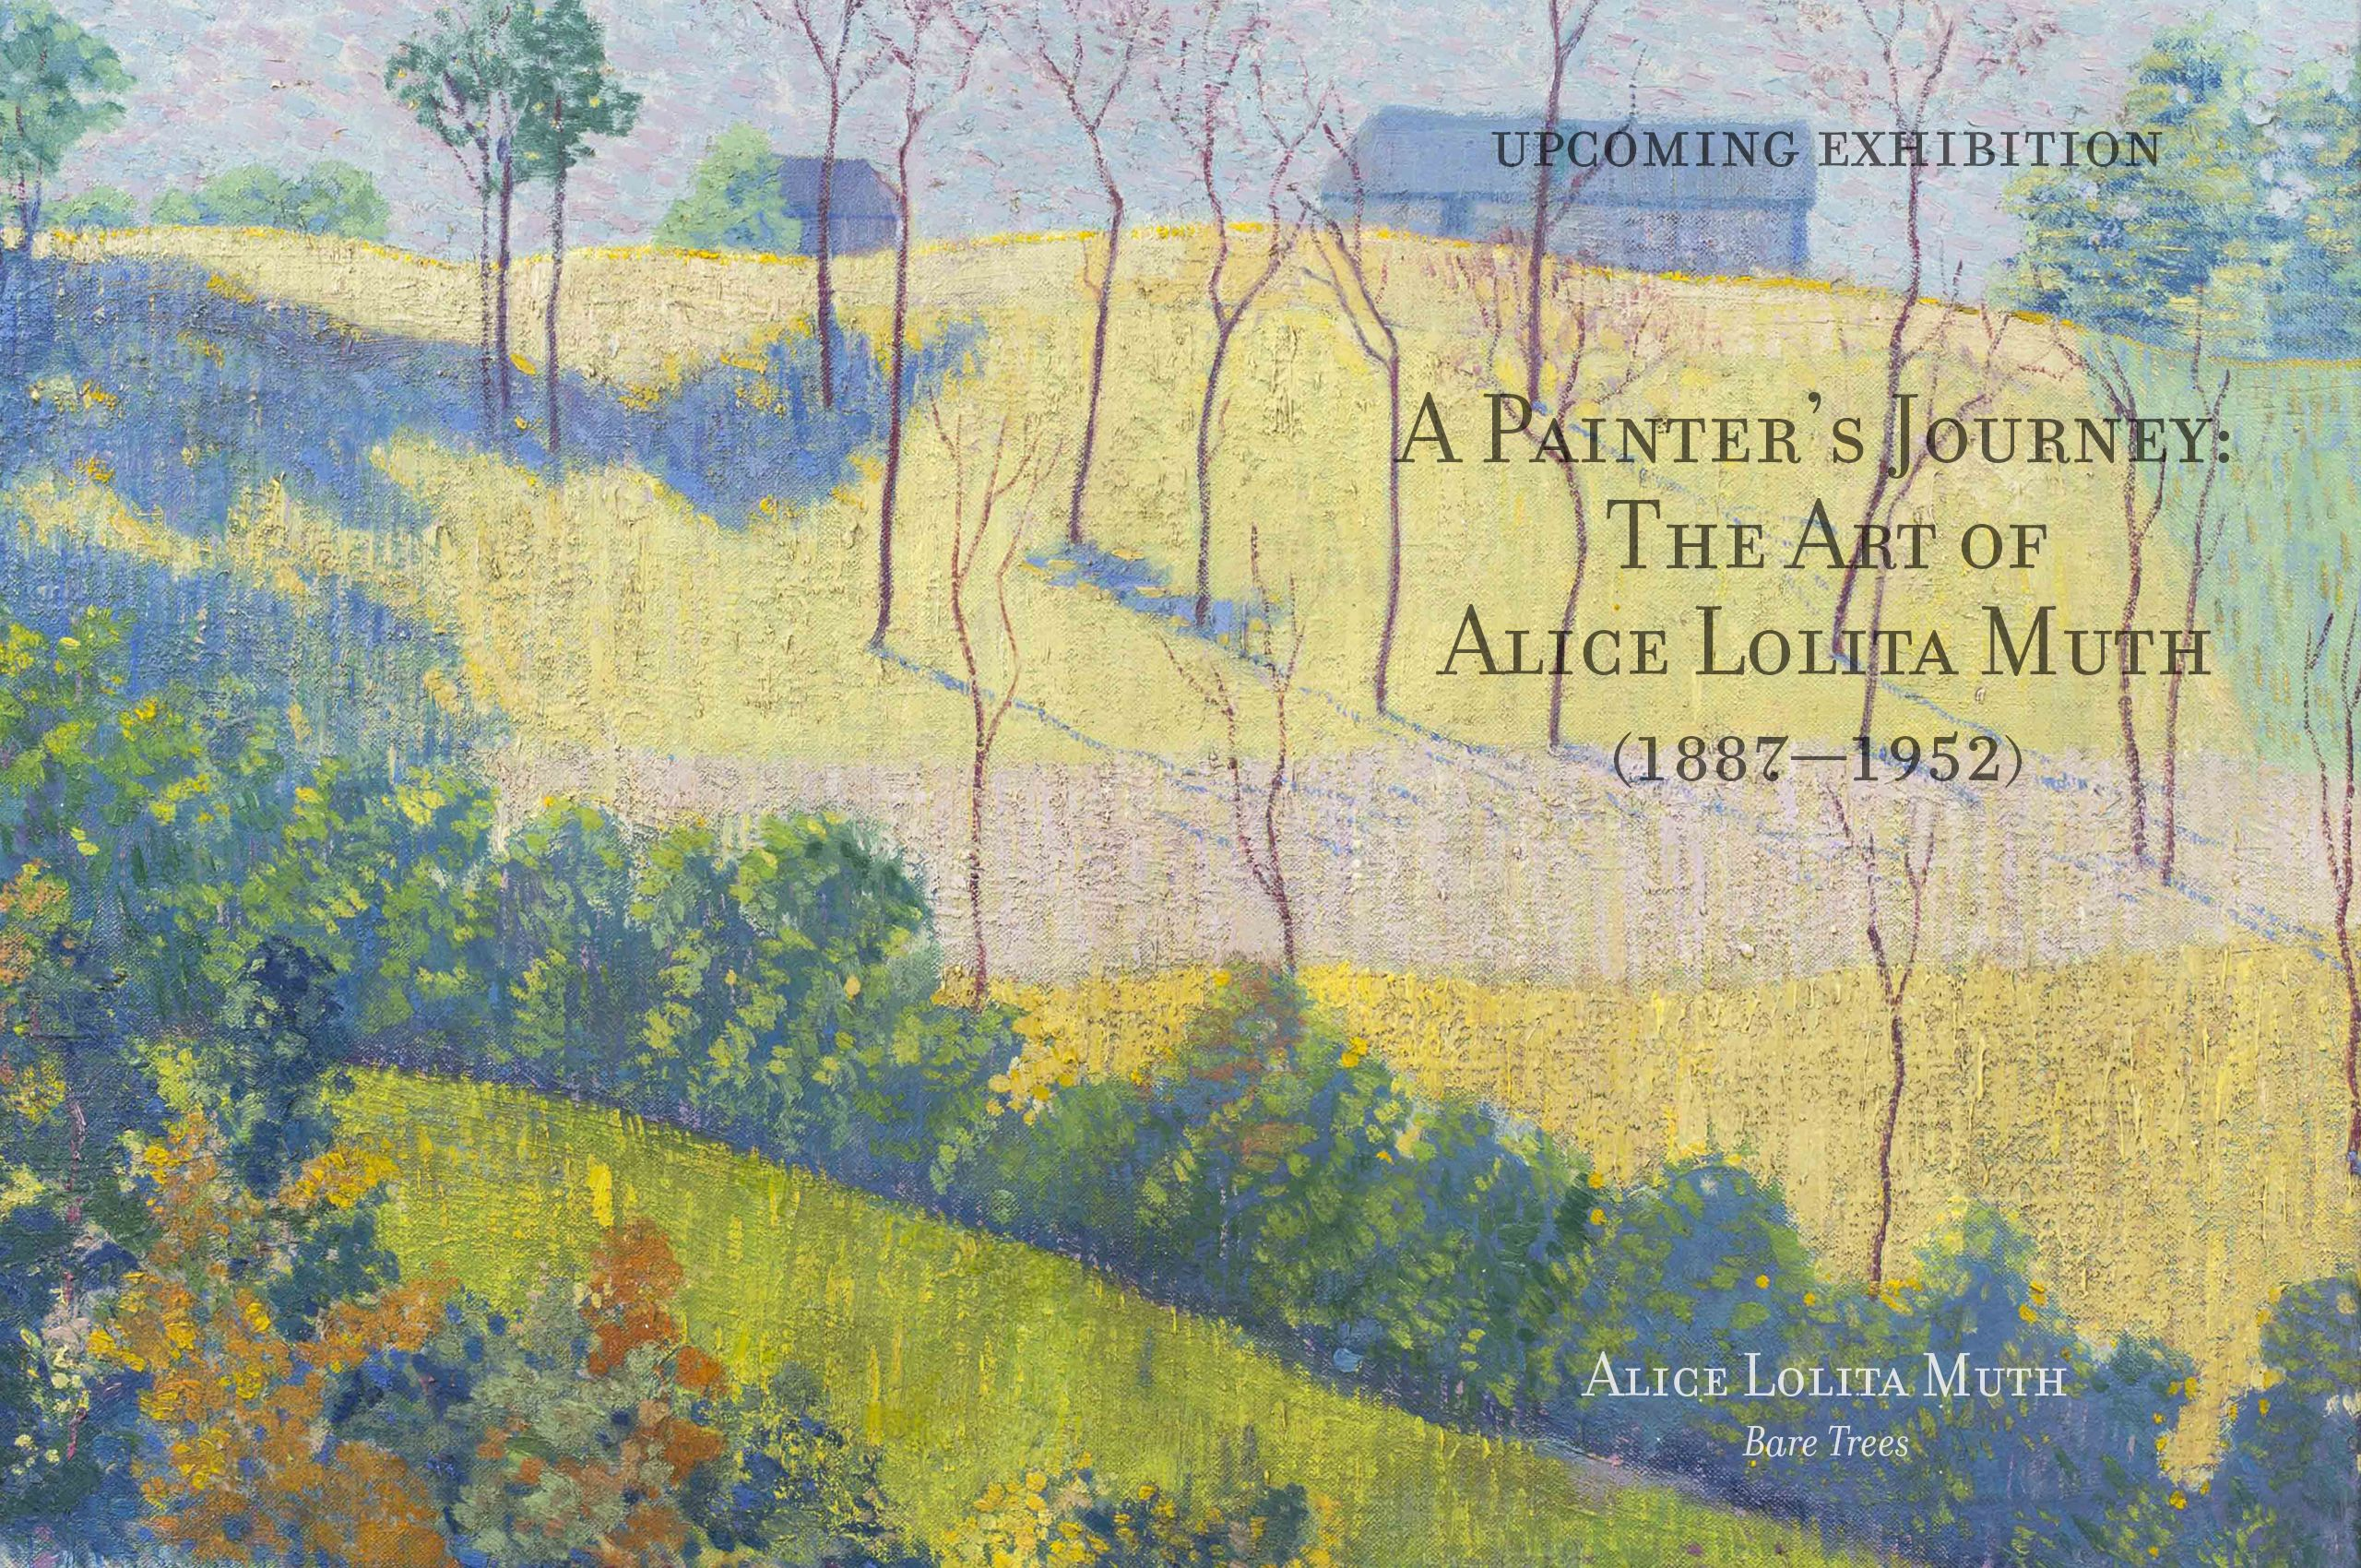 A Painter's Journey: The Art of Alice Lolita Muth (1887-1952)